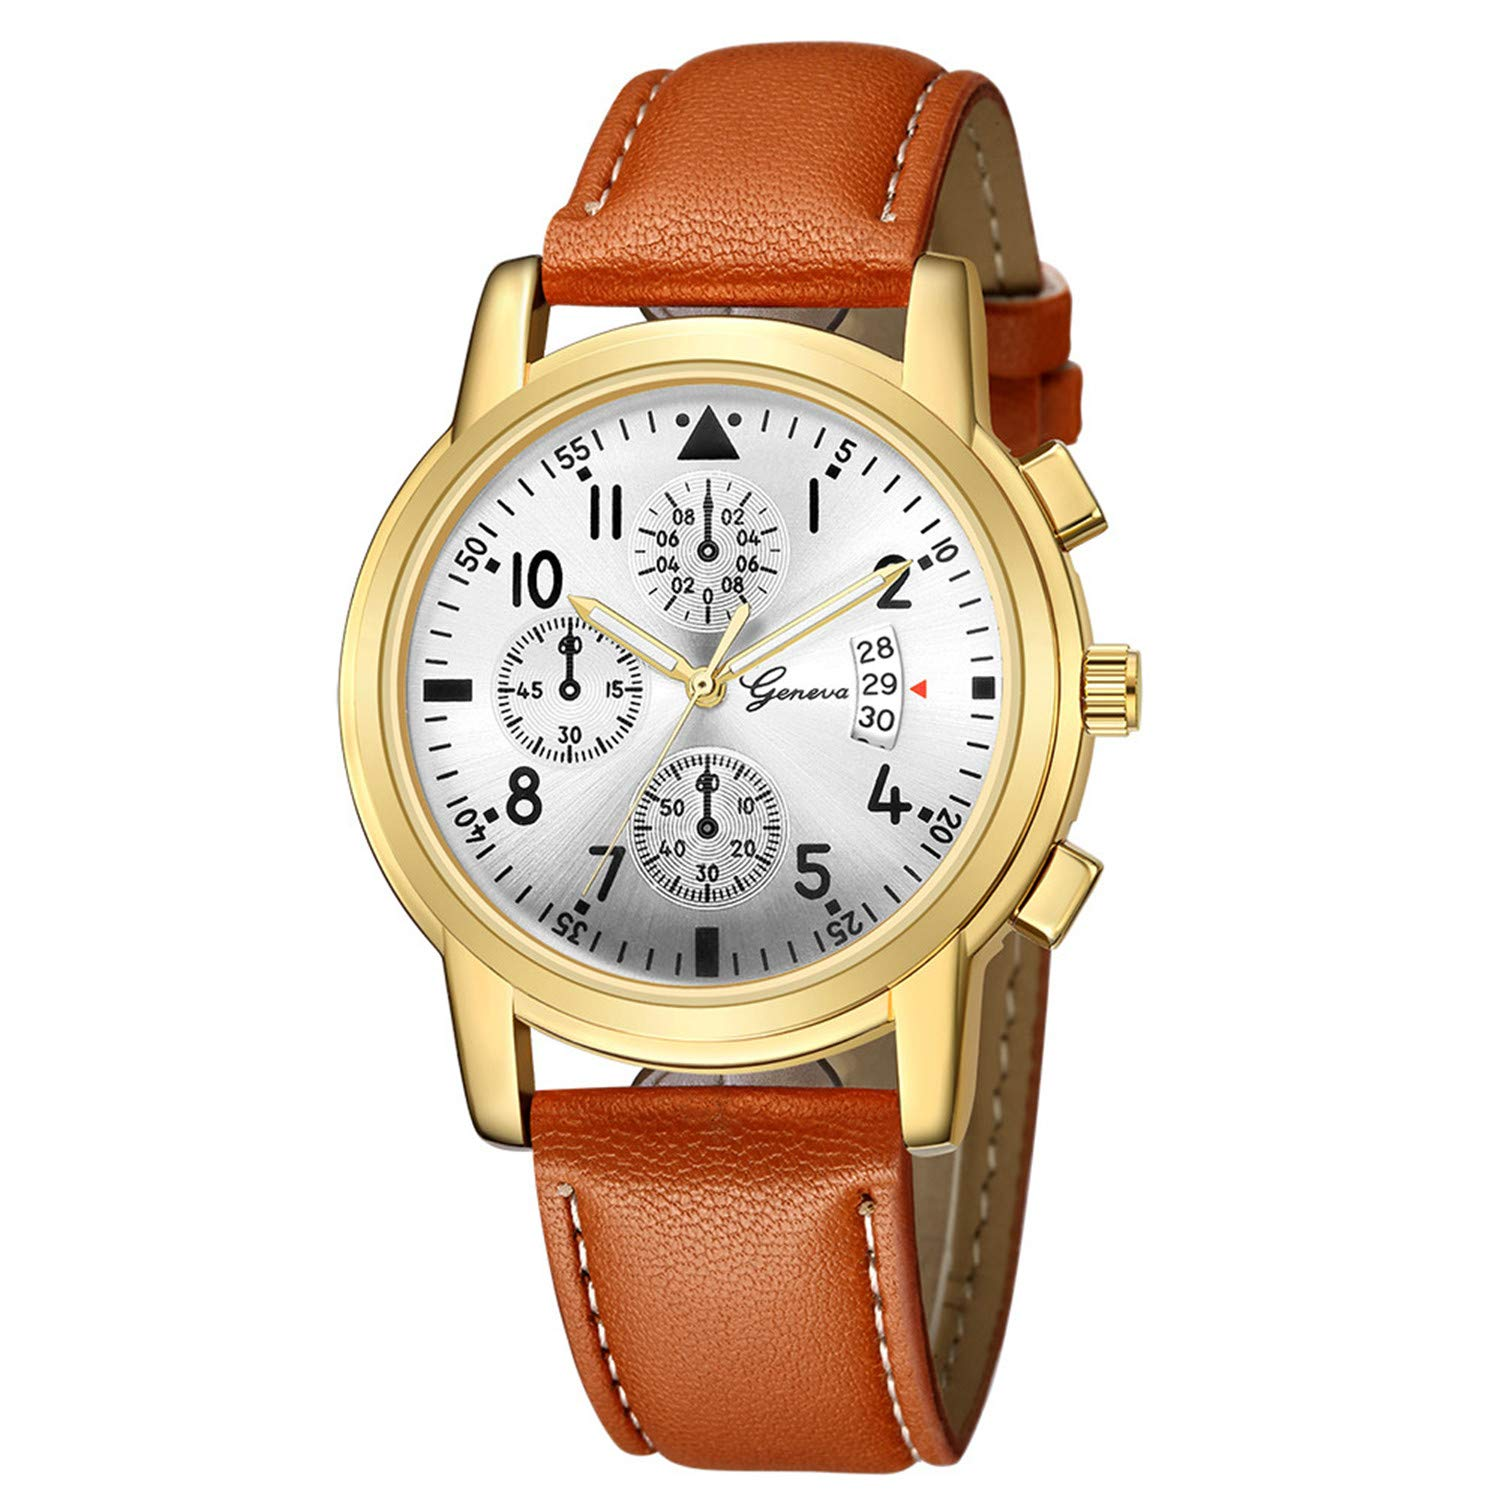 Amazon.com : freedomer Golden Dial Watches Men TopLuxury Creative Quartz Wrist Watch Fashion Leather Mens Watches Relojes para Hombre(A, ...